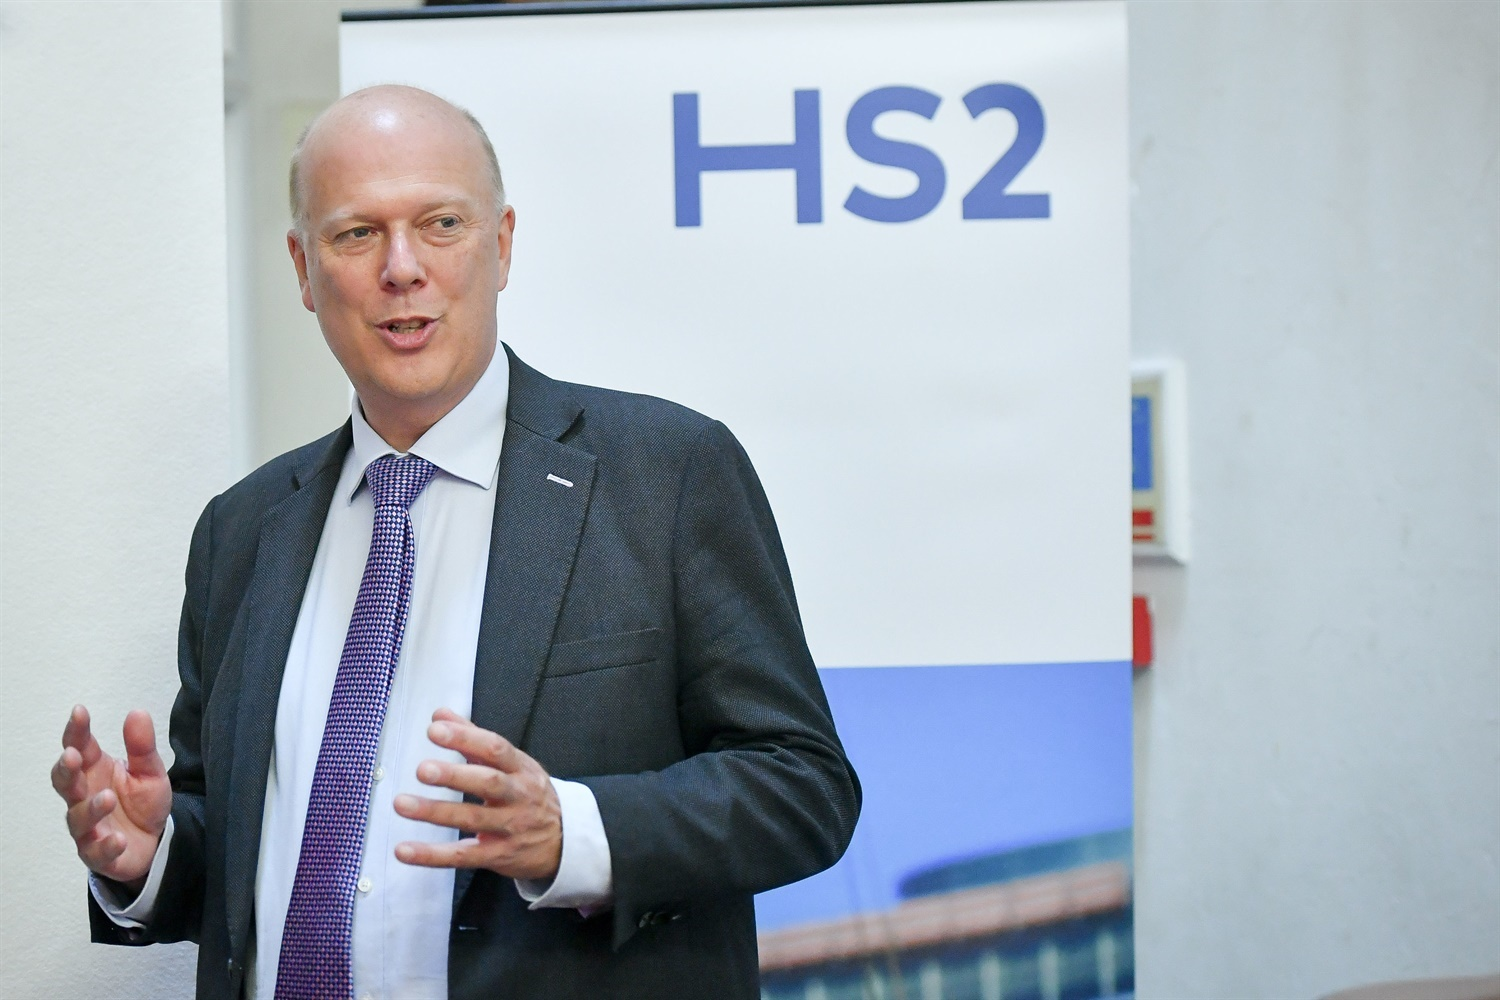 First leg of HS2 'passing the point of no return' due to amount of money already invested, says NAO head